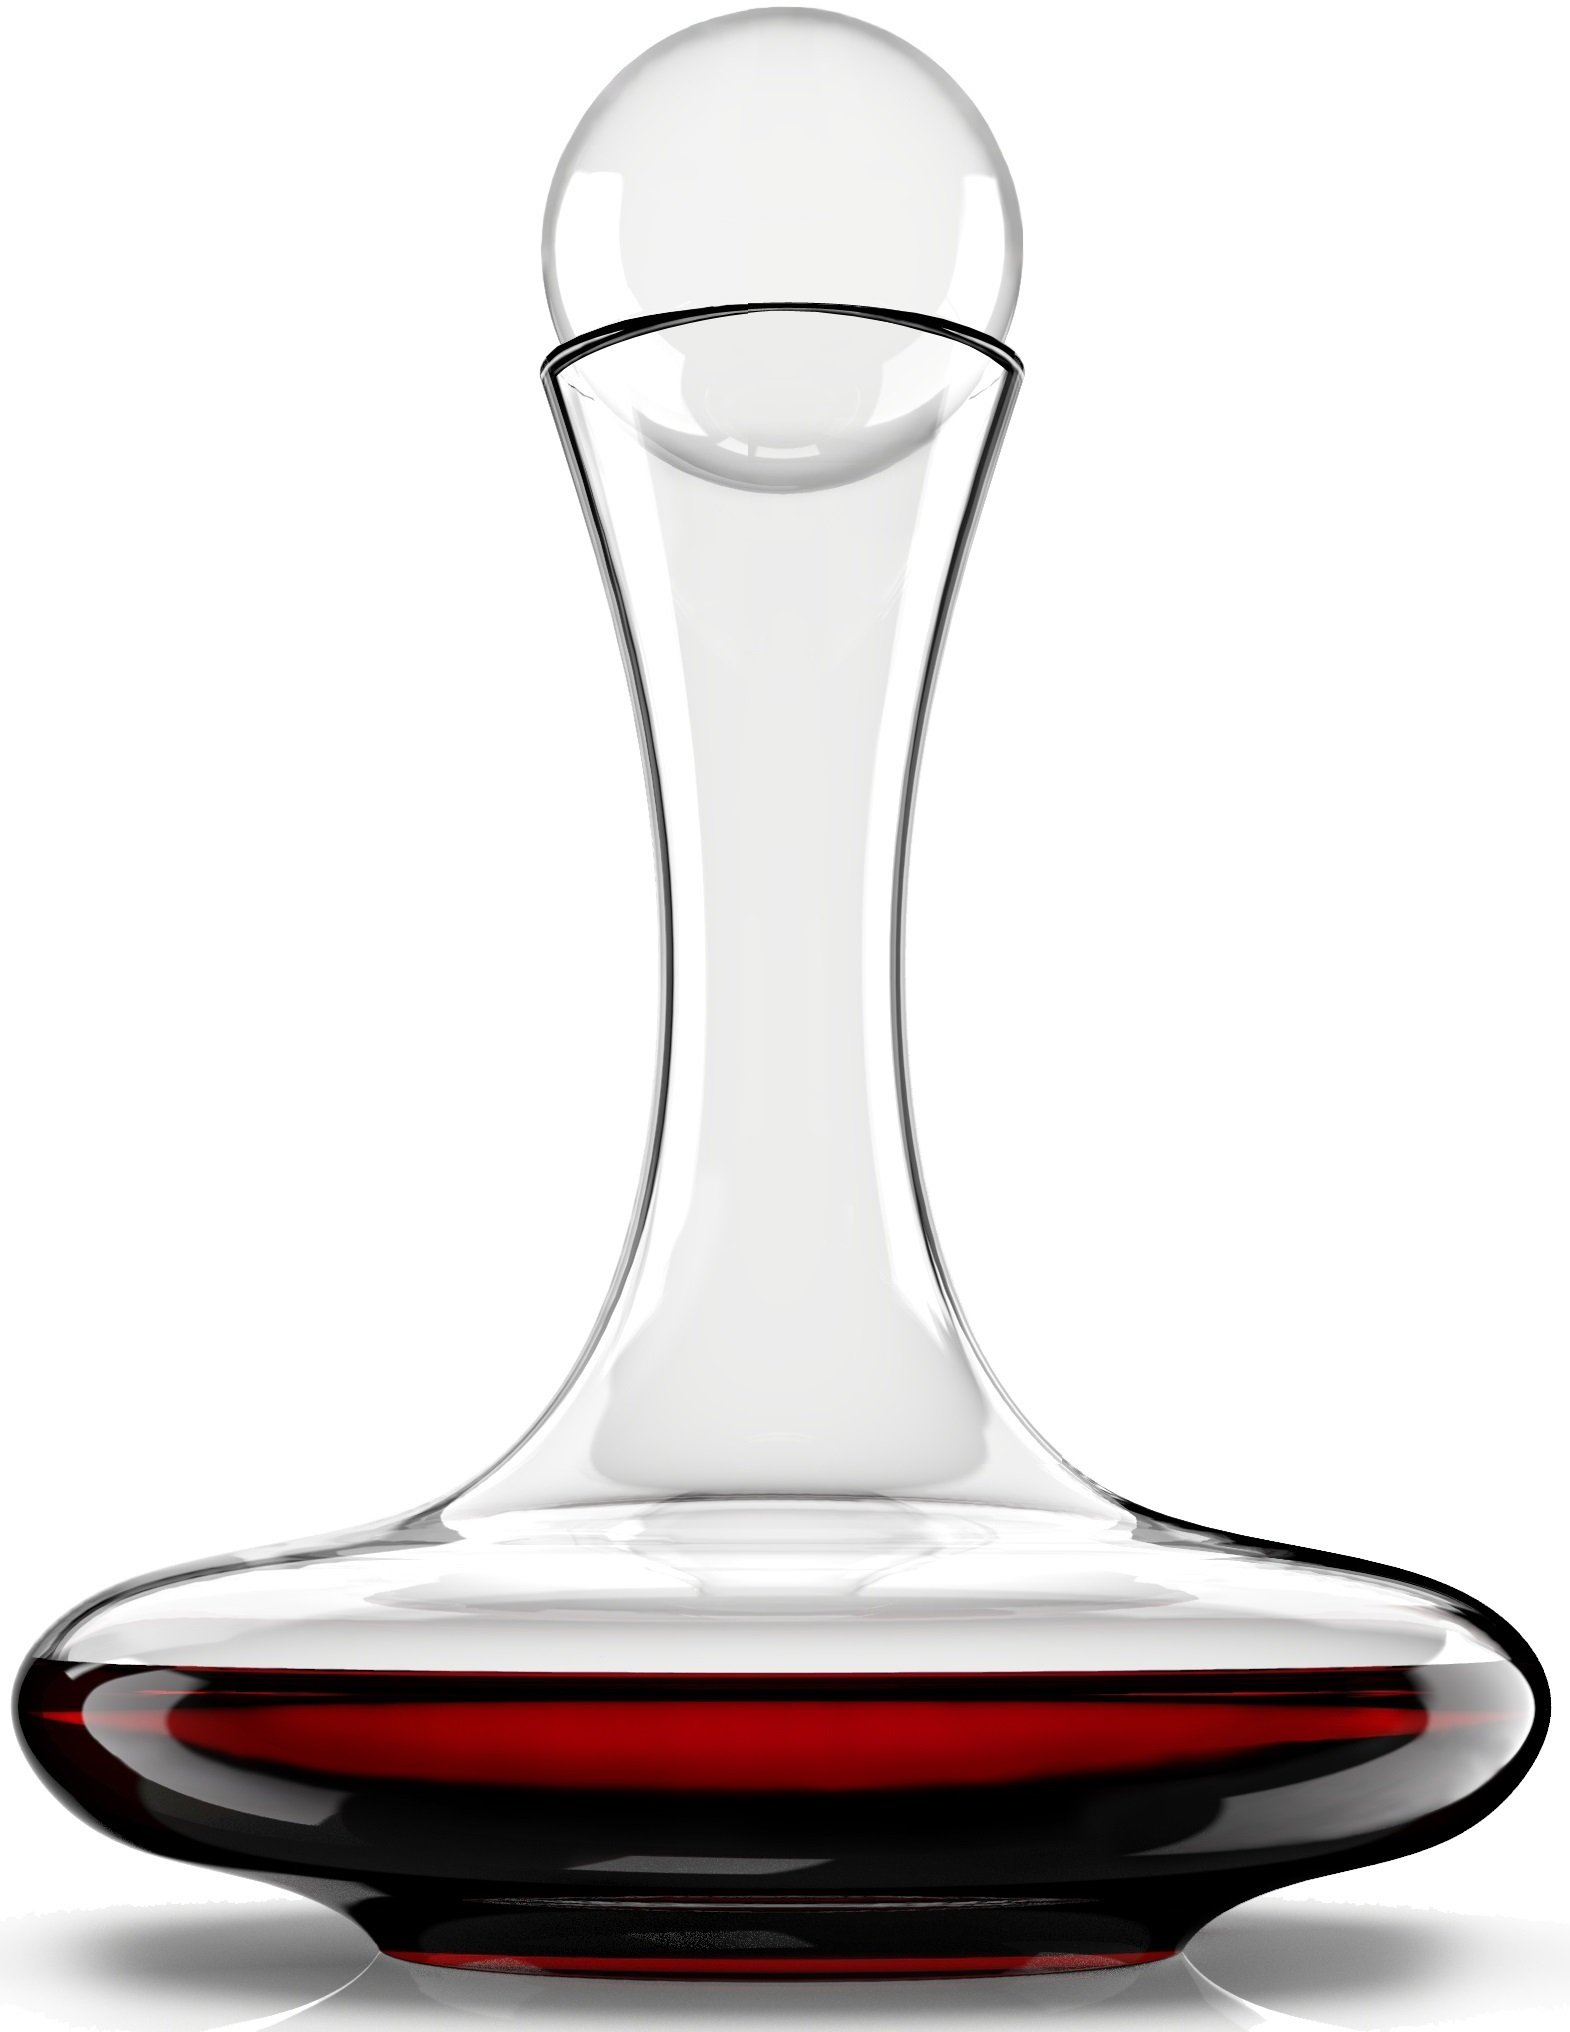 Venero Wine Aerator Decanter Set - Lead Free Crystal Glass Carafe and Stopper - Aerating Liquor Pourer with Lid for Red Wine, Cognac, Bourbon, Scotch, Irish Whiskey - Luxury Gift Box for Men or Women